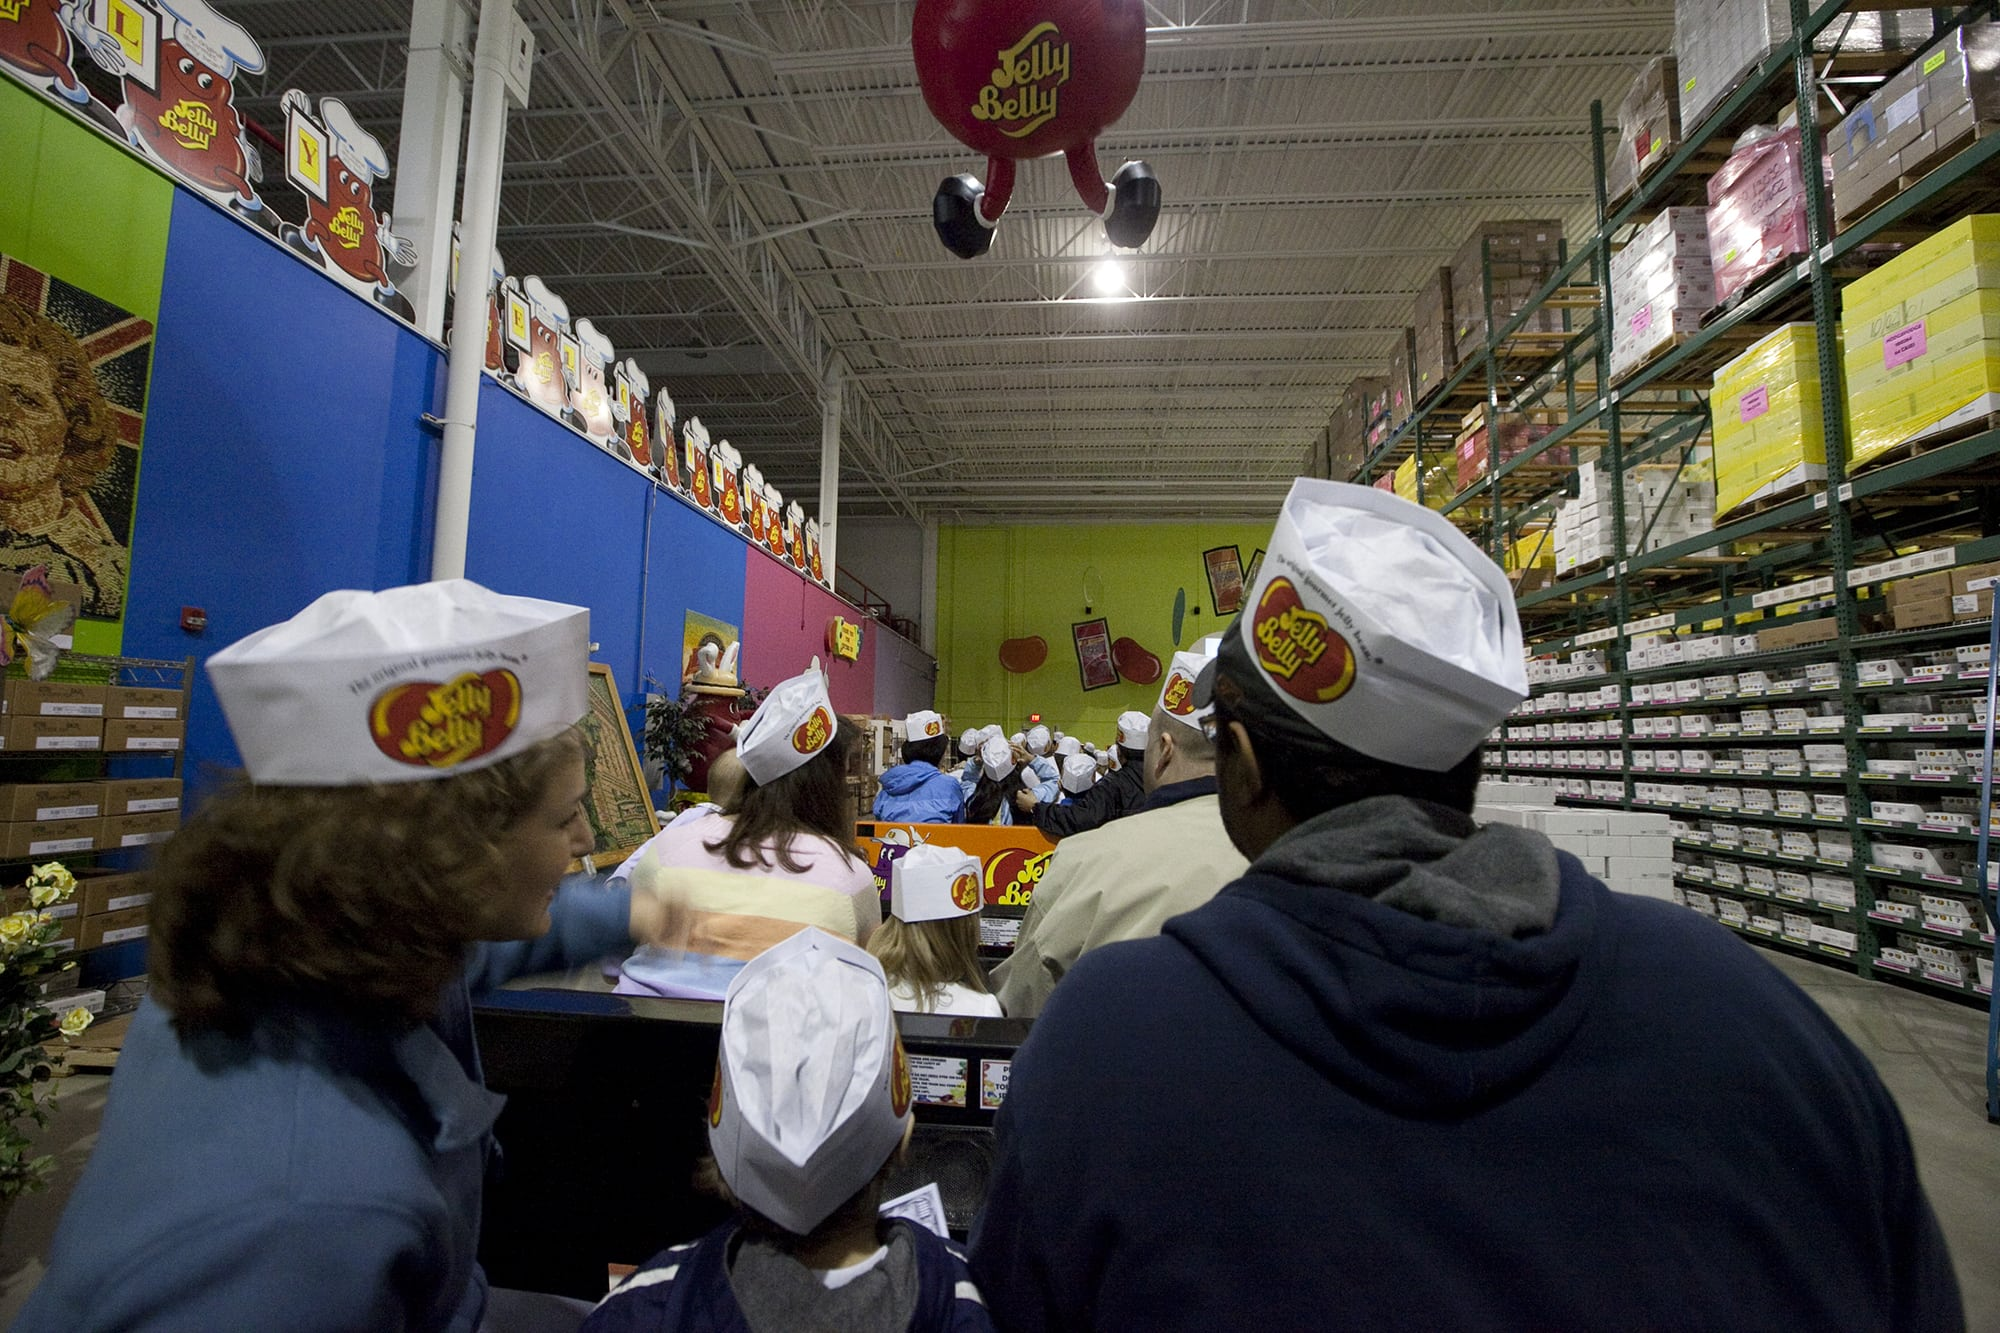 Jelly Belly Center Tour in Milwaukee, Wisconsin